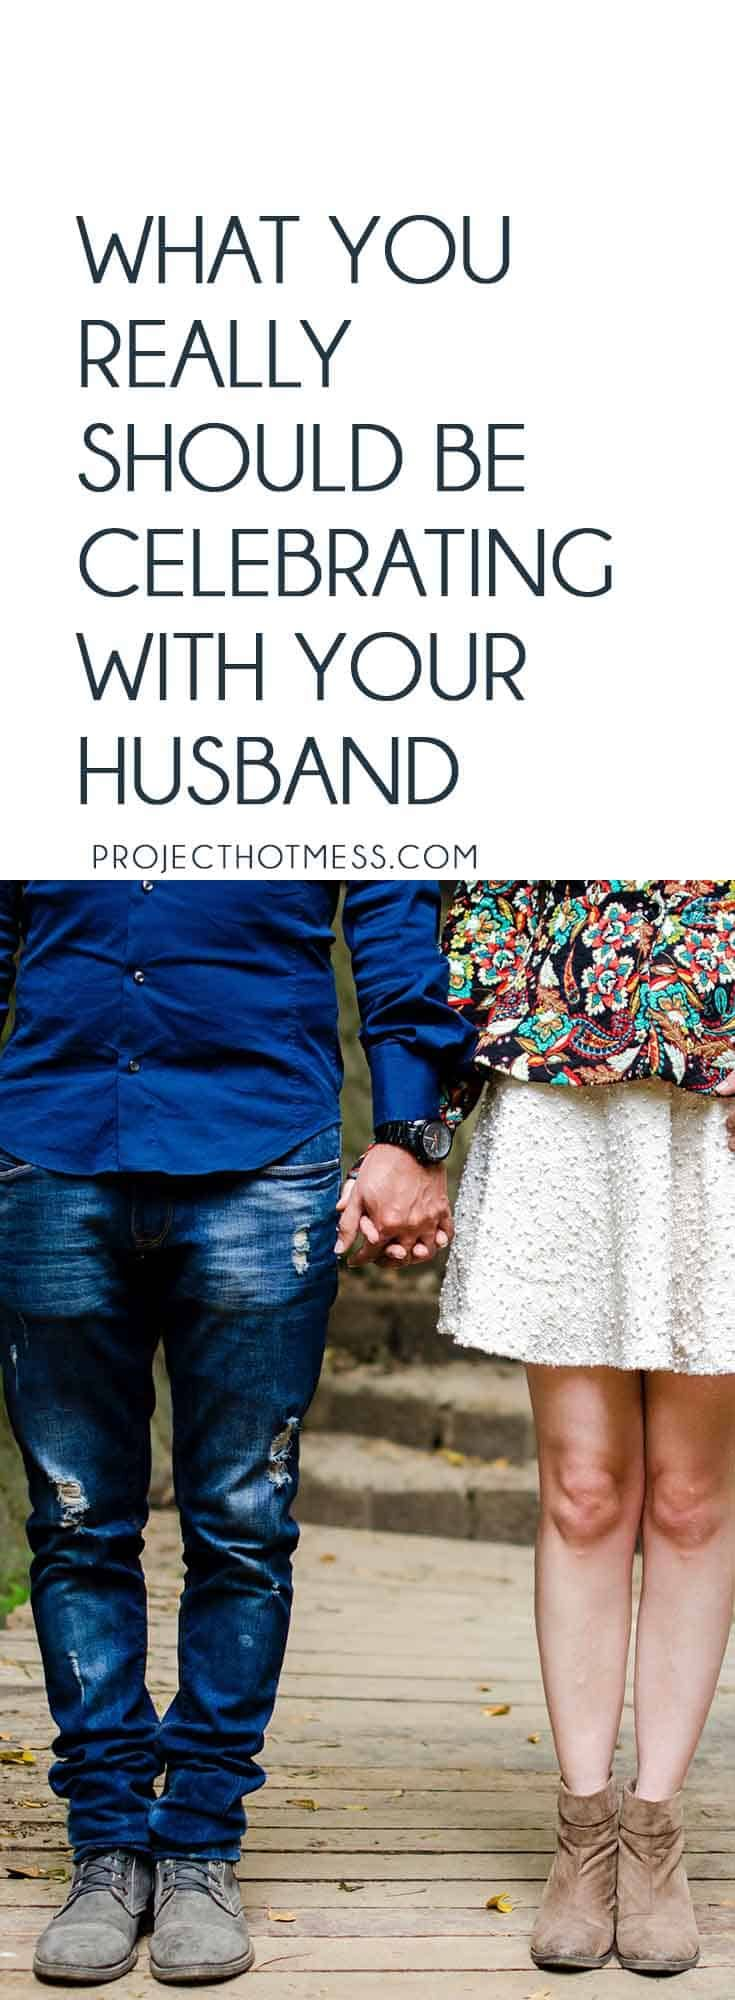 Celebrating milestones is important, but what about the daily things should be celebrating with your husband? Things that are as important as anniversaries.    #marriageadvice #marriagetips #relationshipadvice #marriedlife via @project_hotmess